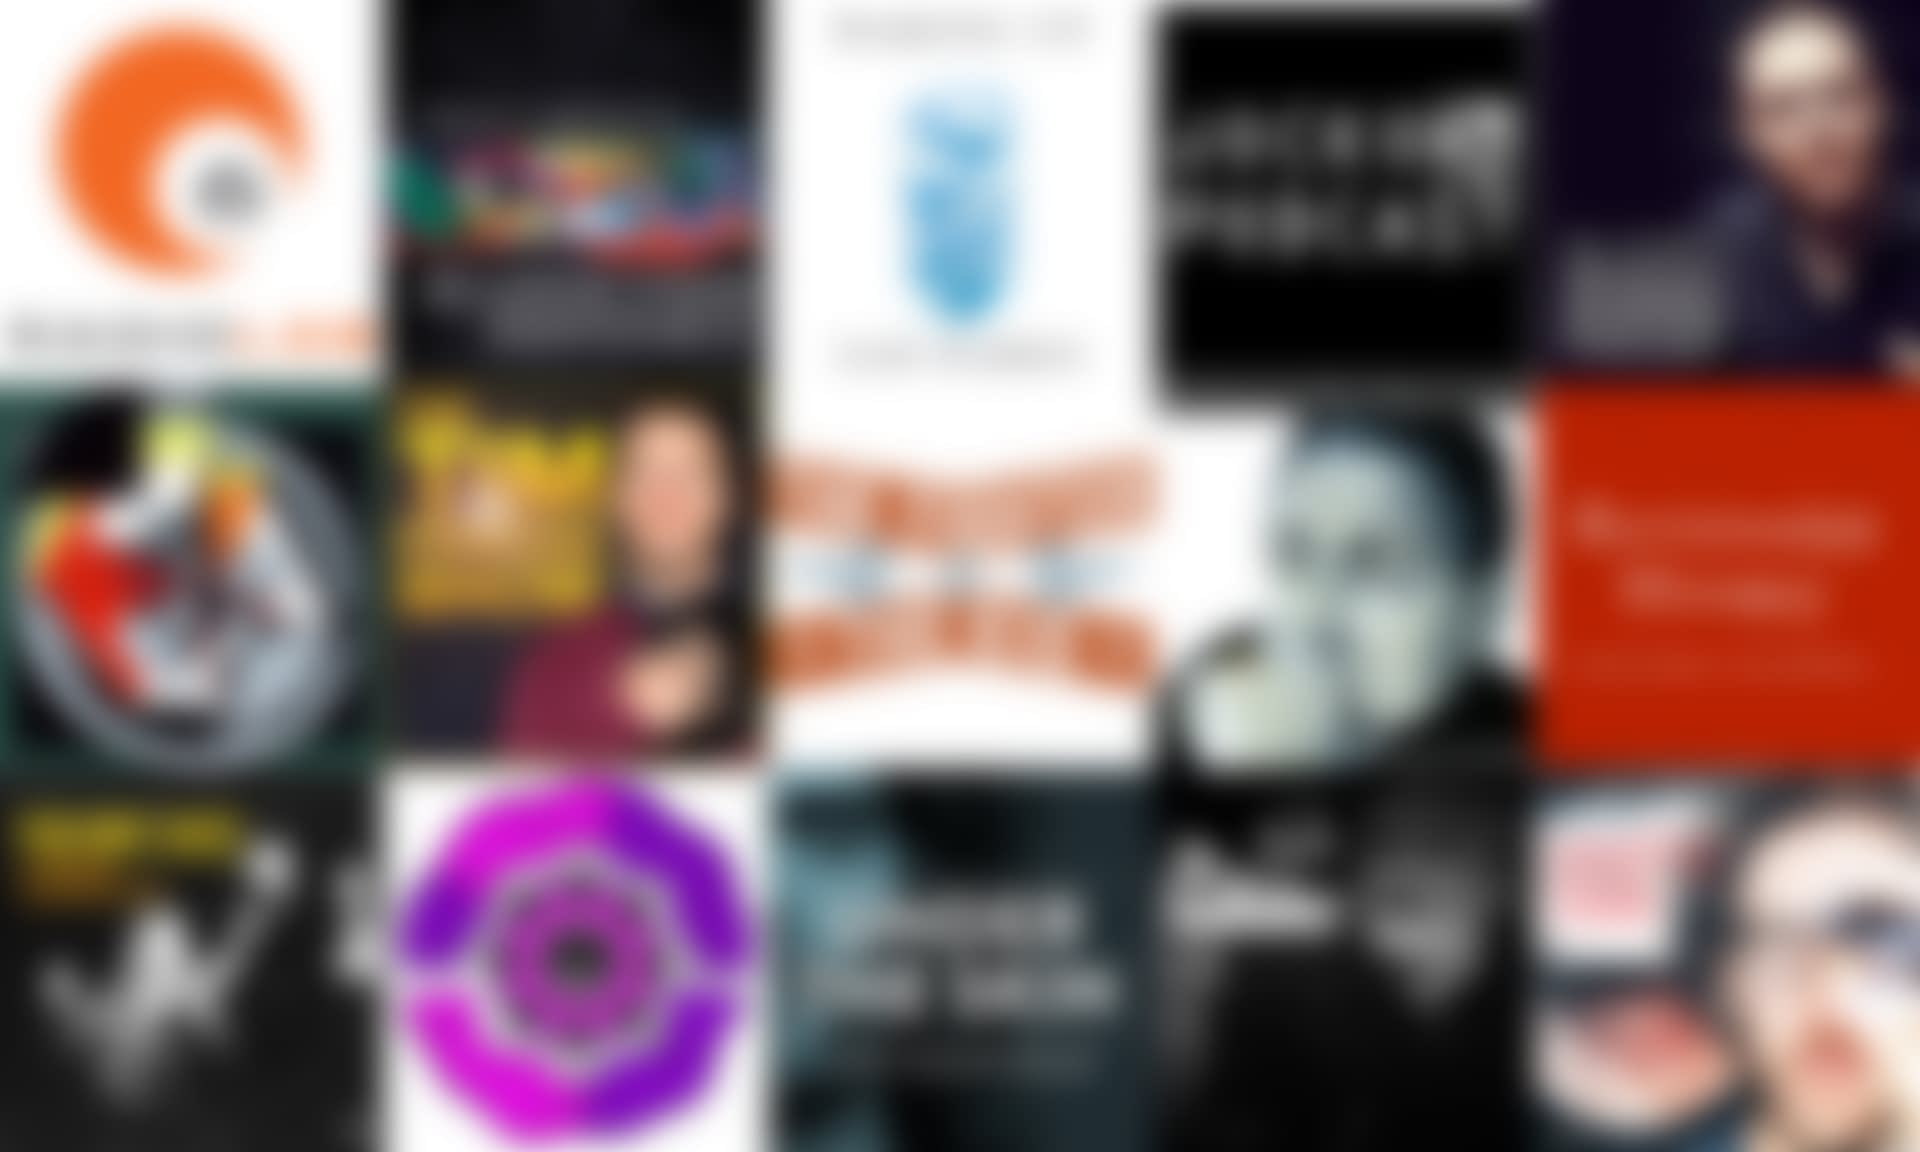 Top 15 Podcasts Mentioned on The Joe Rogan Experience